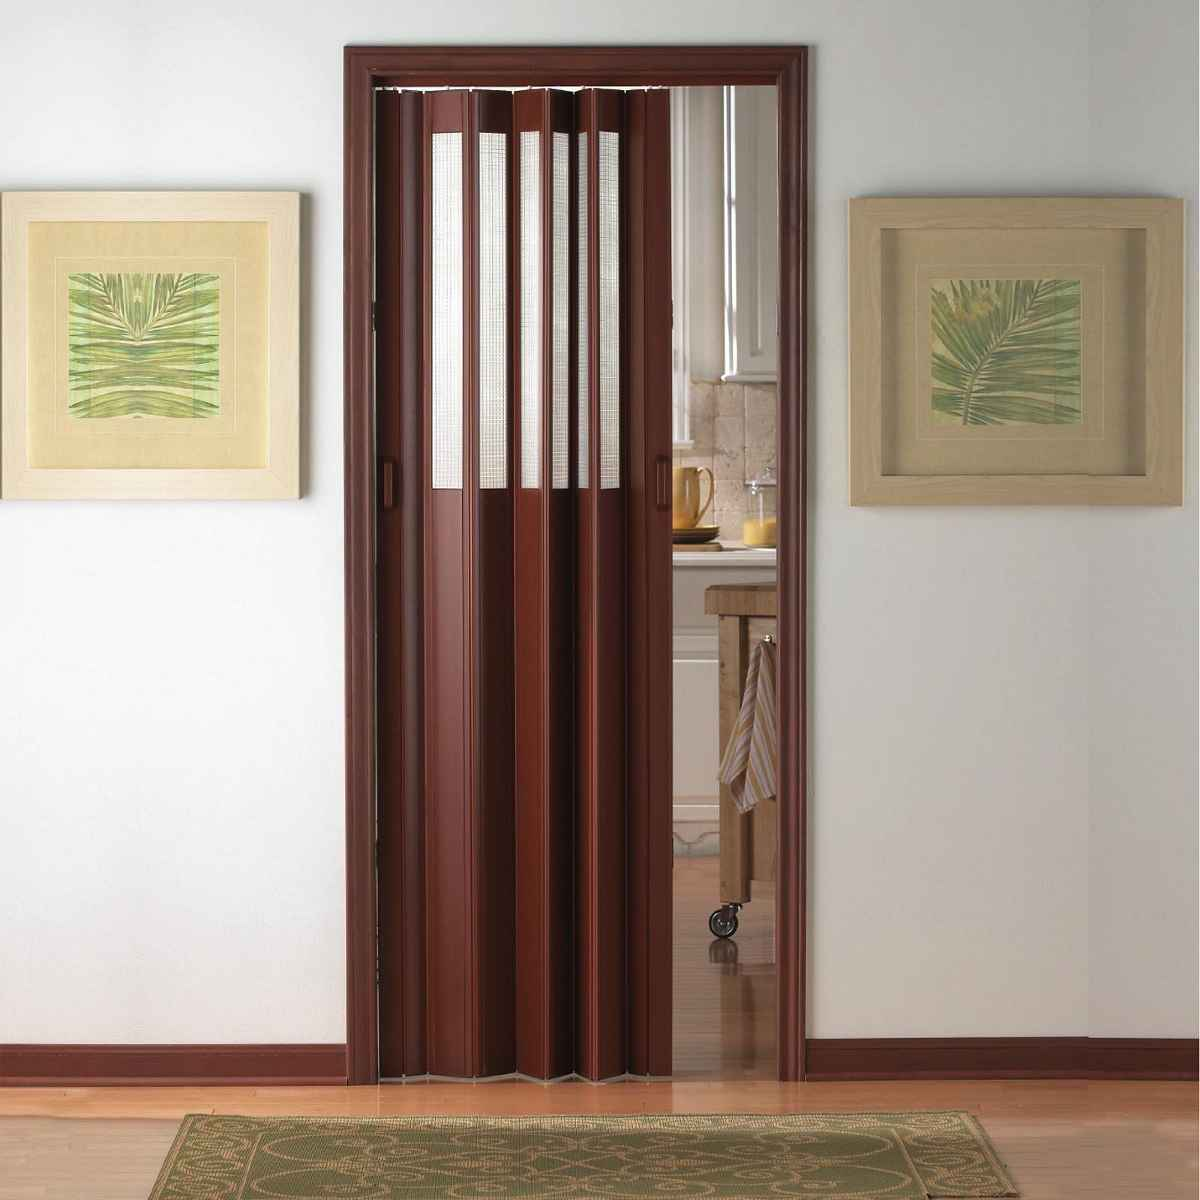 Retractable screen doors feel the home for Accordion retractable screen doors